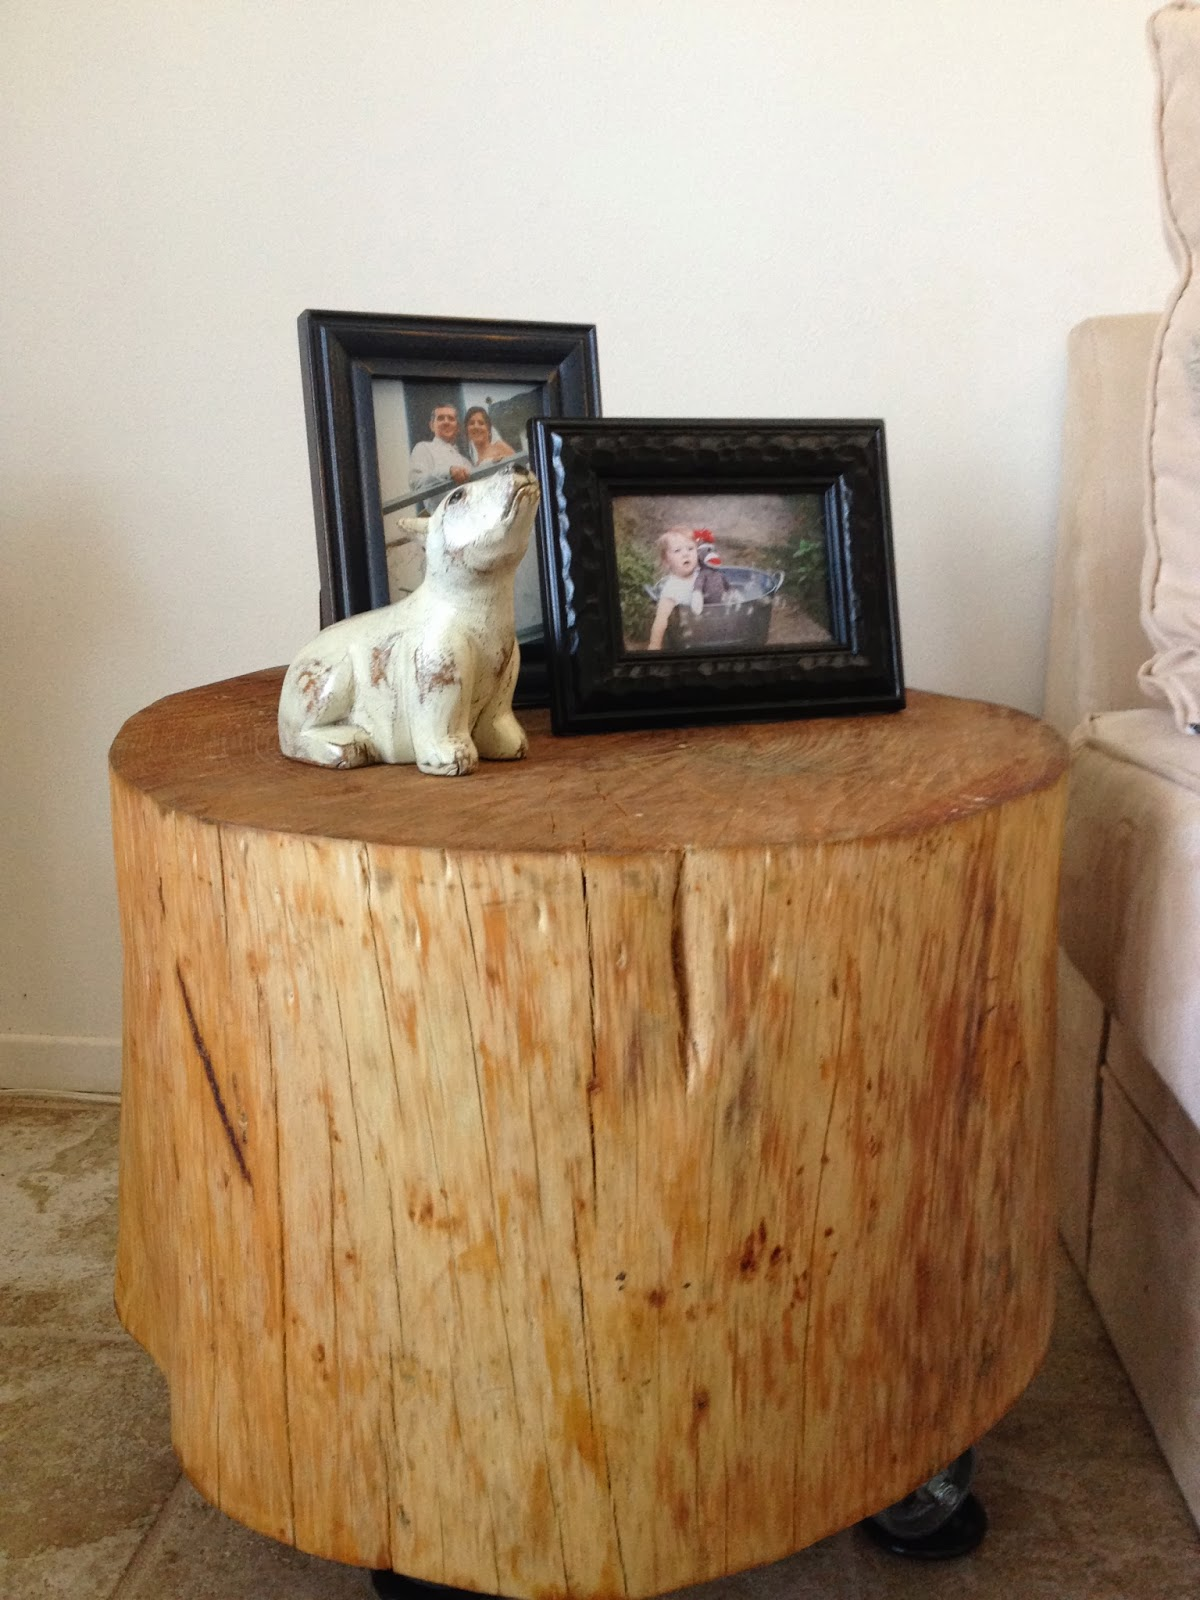 how to make a handmade natural tree stump side table? | homesfeed